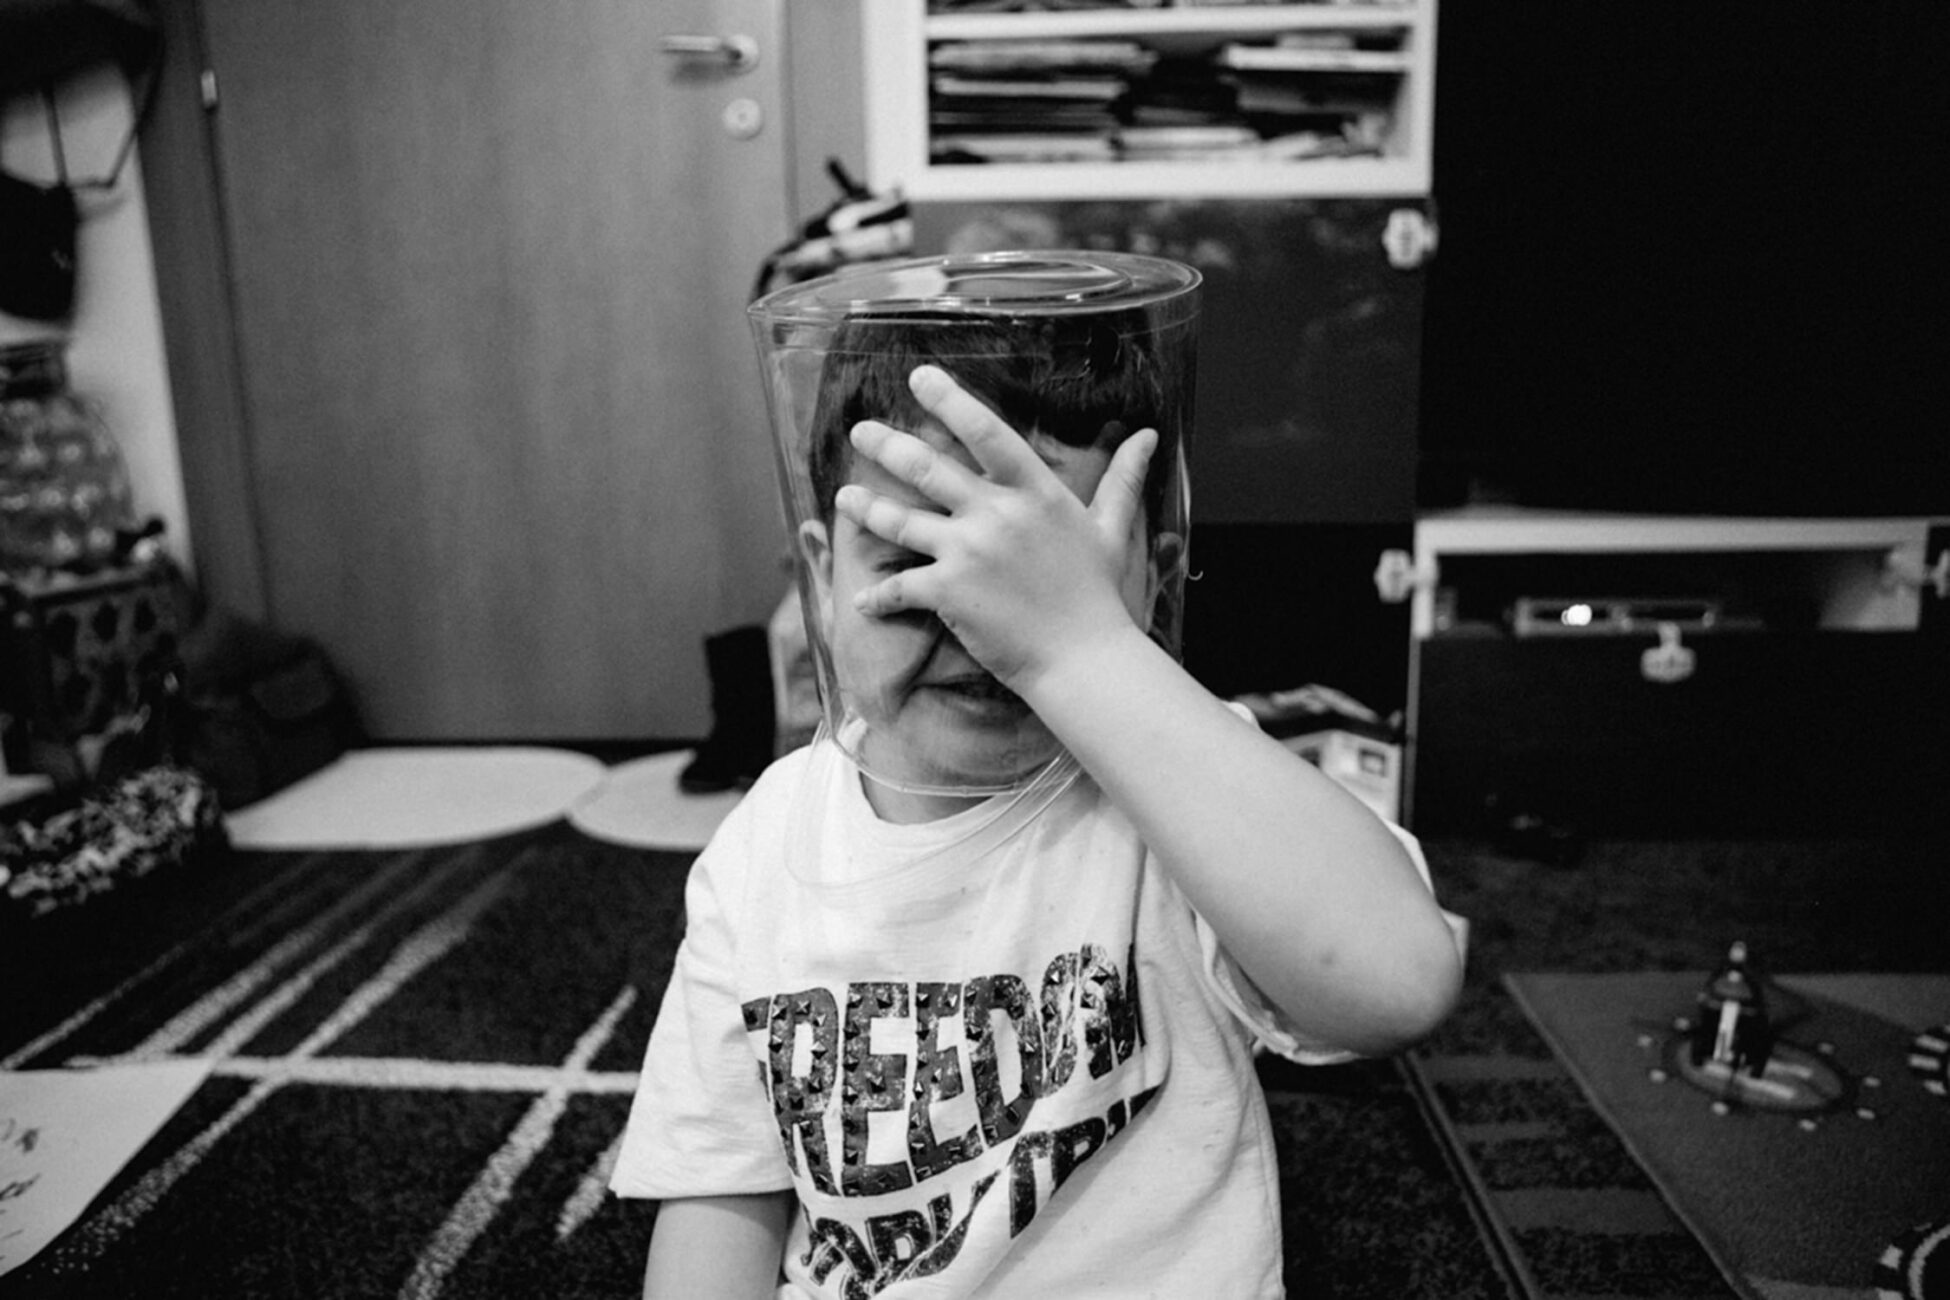 little boywith a plastic container on his head during a family photoshoot